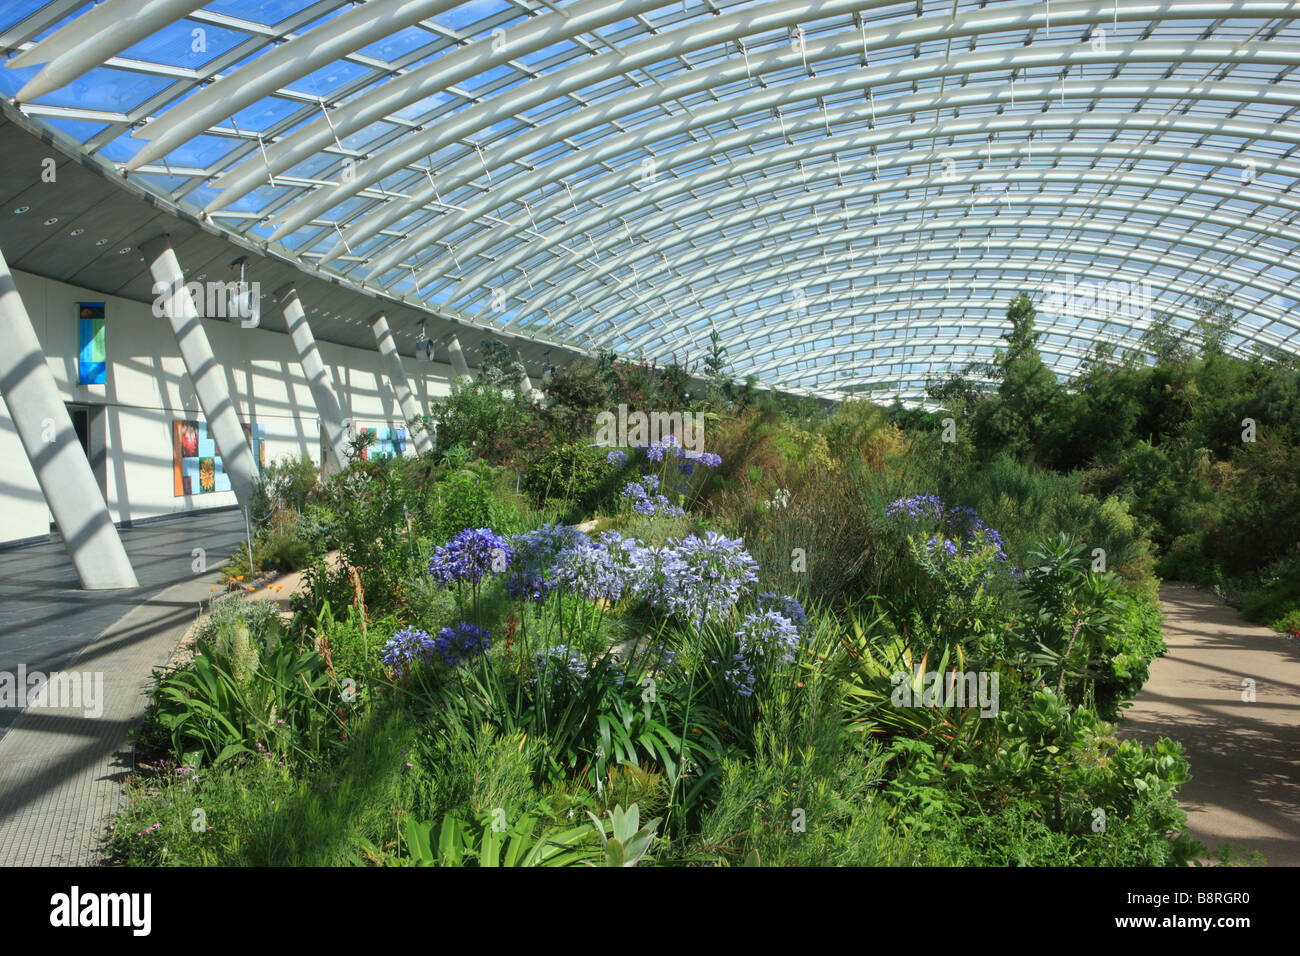 The Great Glasshouse, National Botanic Garden Of Wales